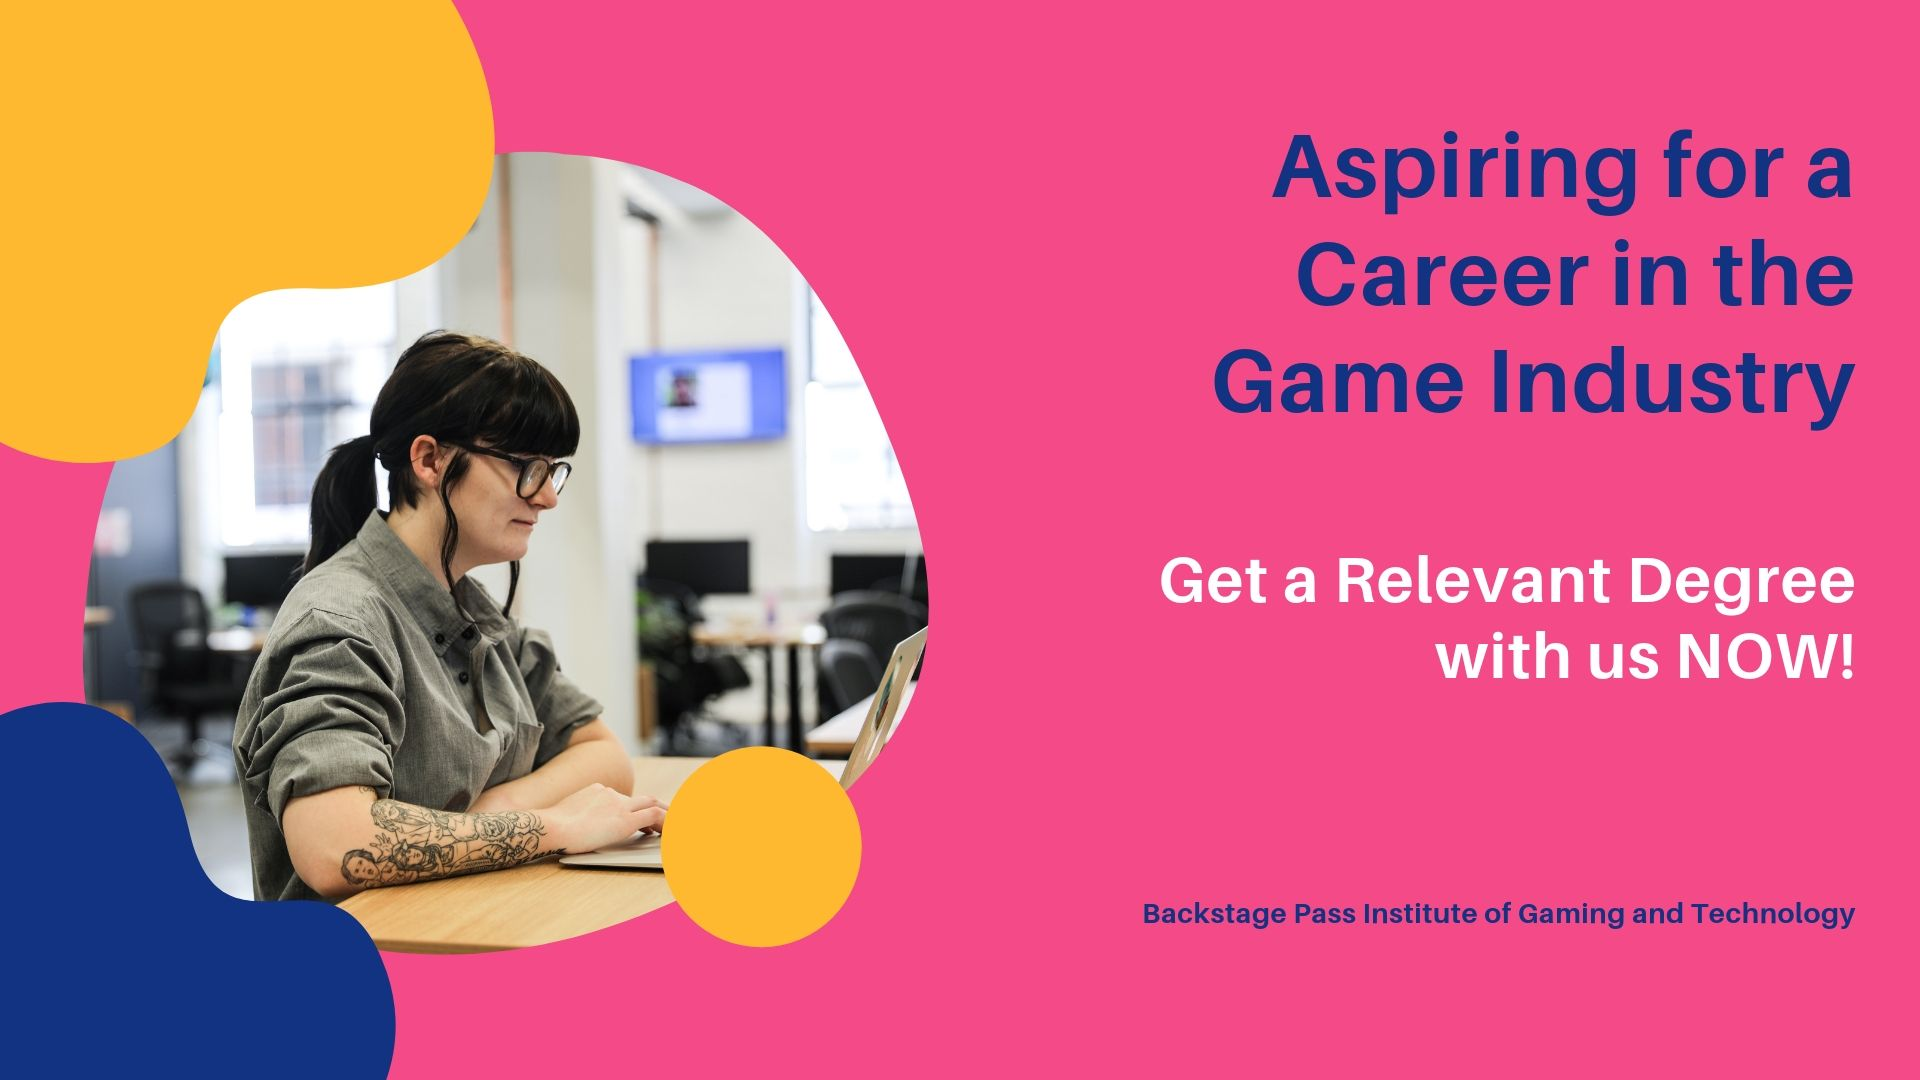 Aspiring for a Career in the Game Industry